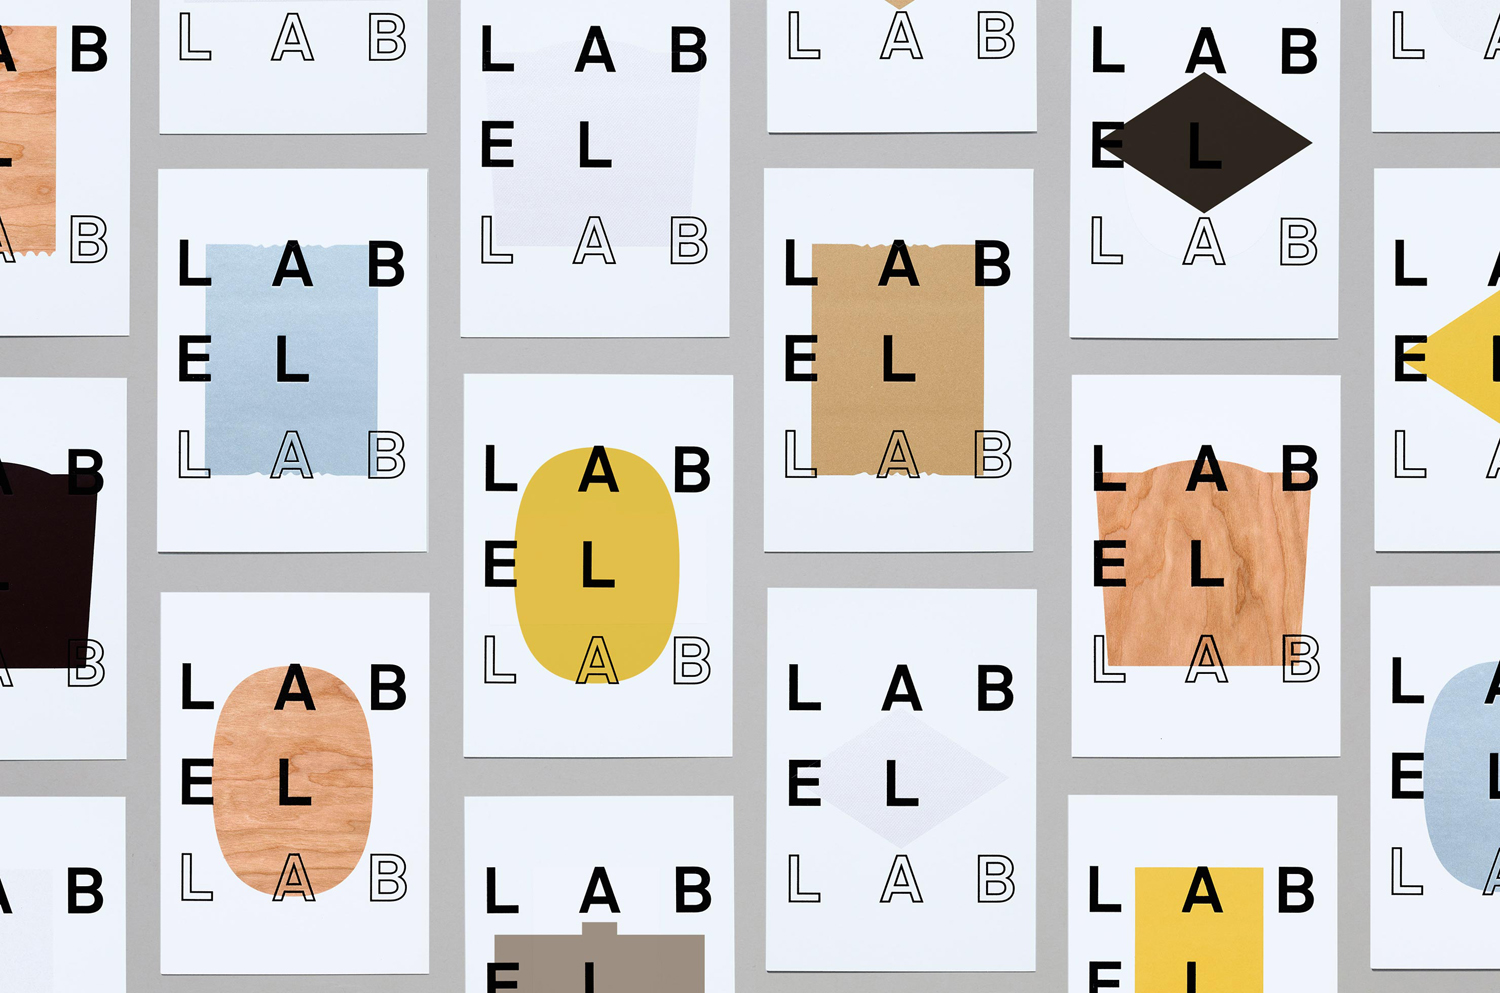 Logotype and invitation by TM for Label Lab, The Forum for Label and Packaging Innovation, hosted by Arconvert.